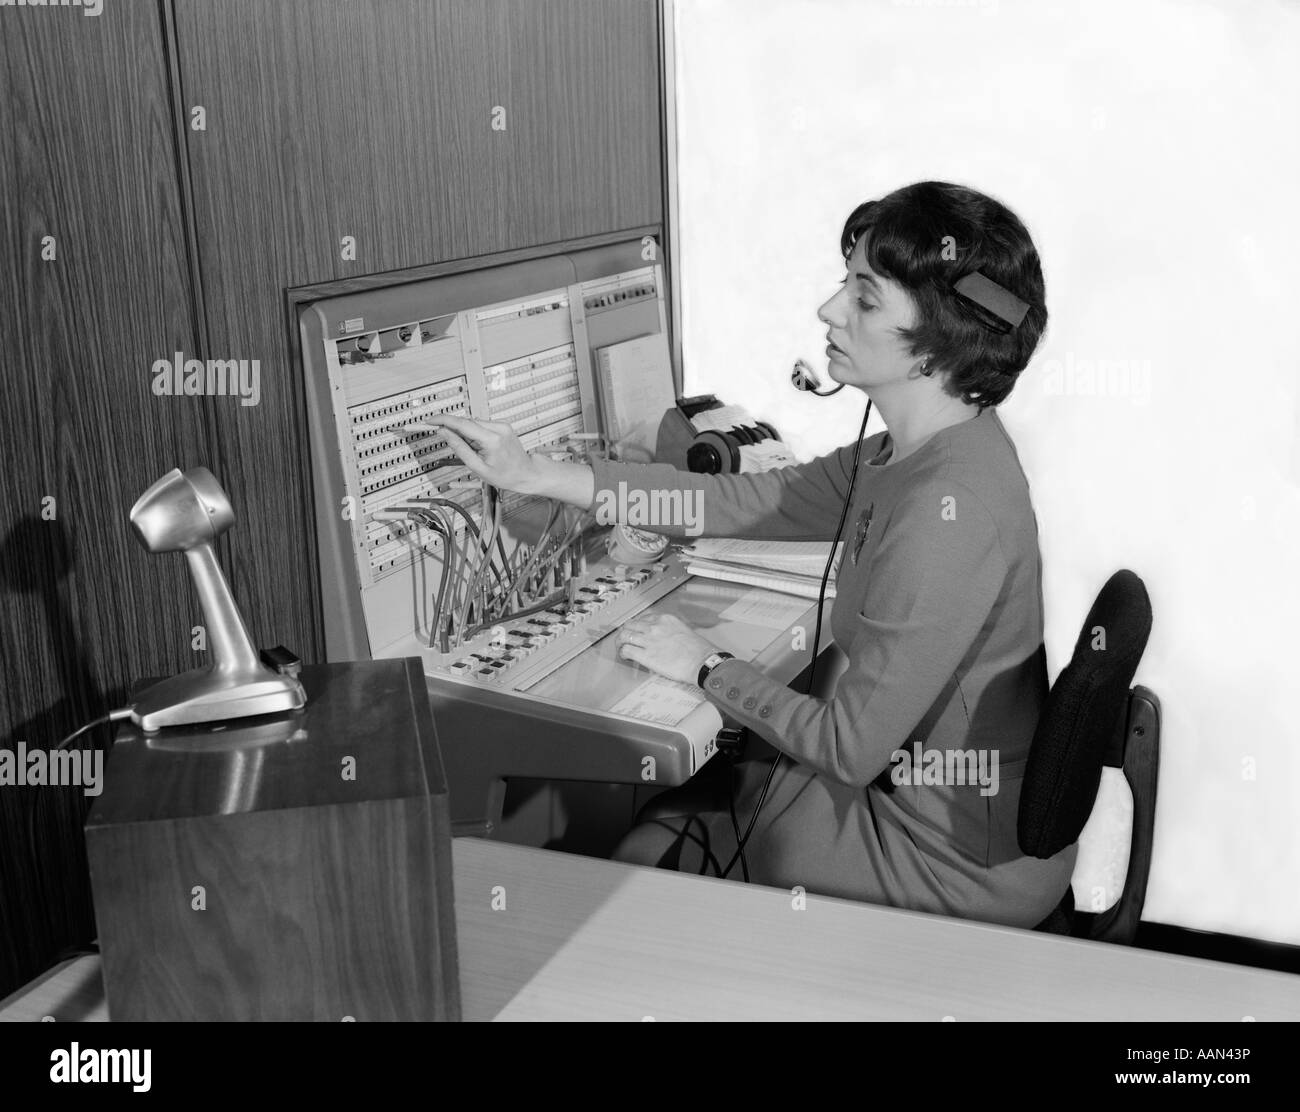 telephone switchboard stock photos telephone switchboard stock 1960s w office telephone switchboard operator wearing headset transferring call receptionist answering service stock image